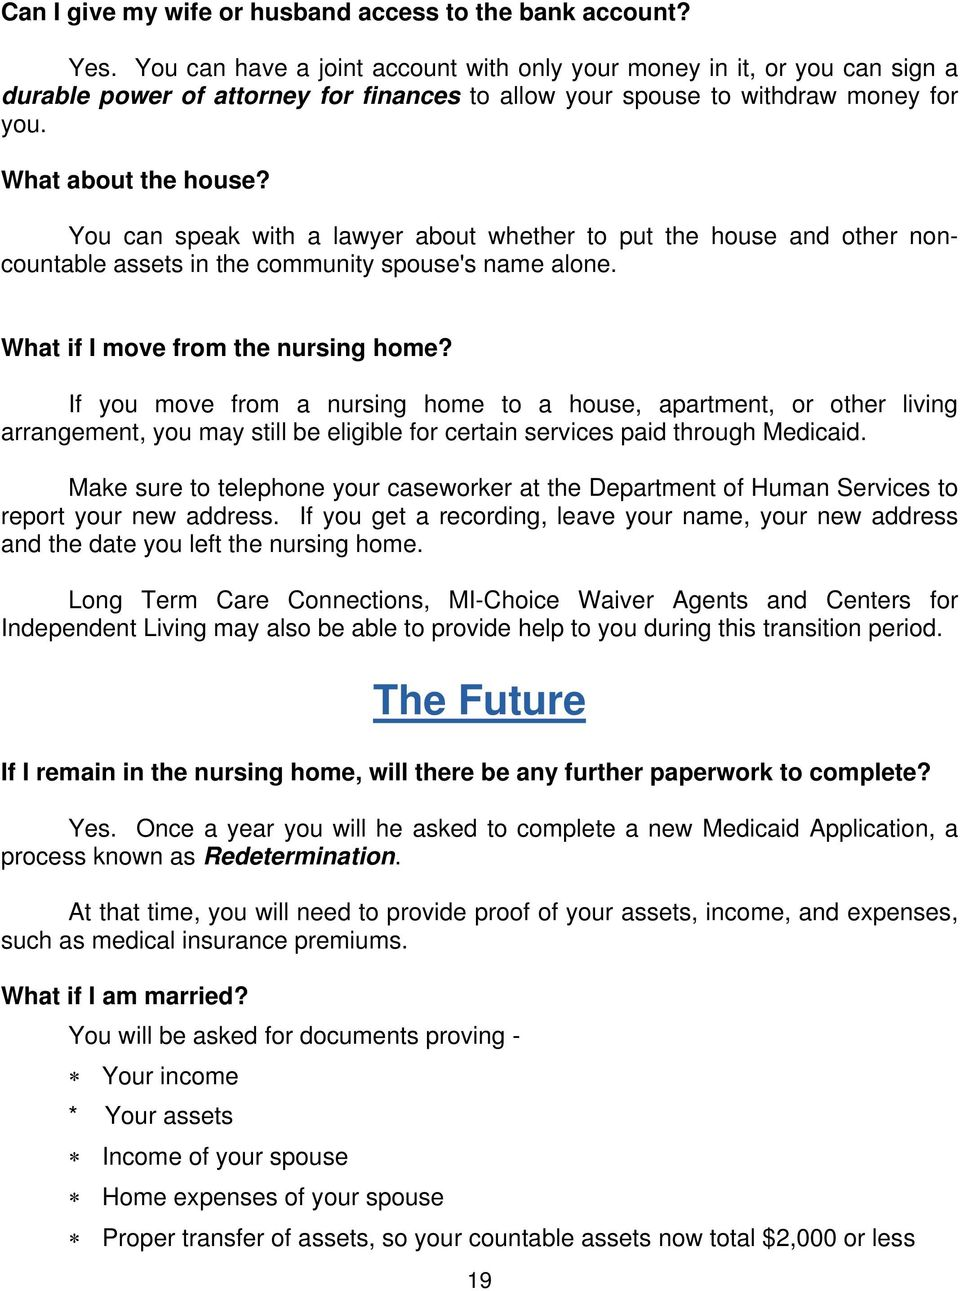 You can speak with a lawyer about whether to put the house and other noncountable assets in the community spouse's name alone. What if I move from the nursing home?